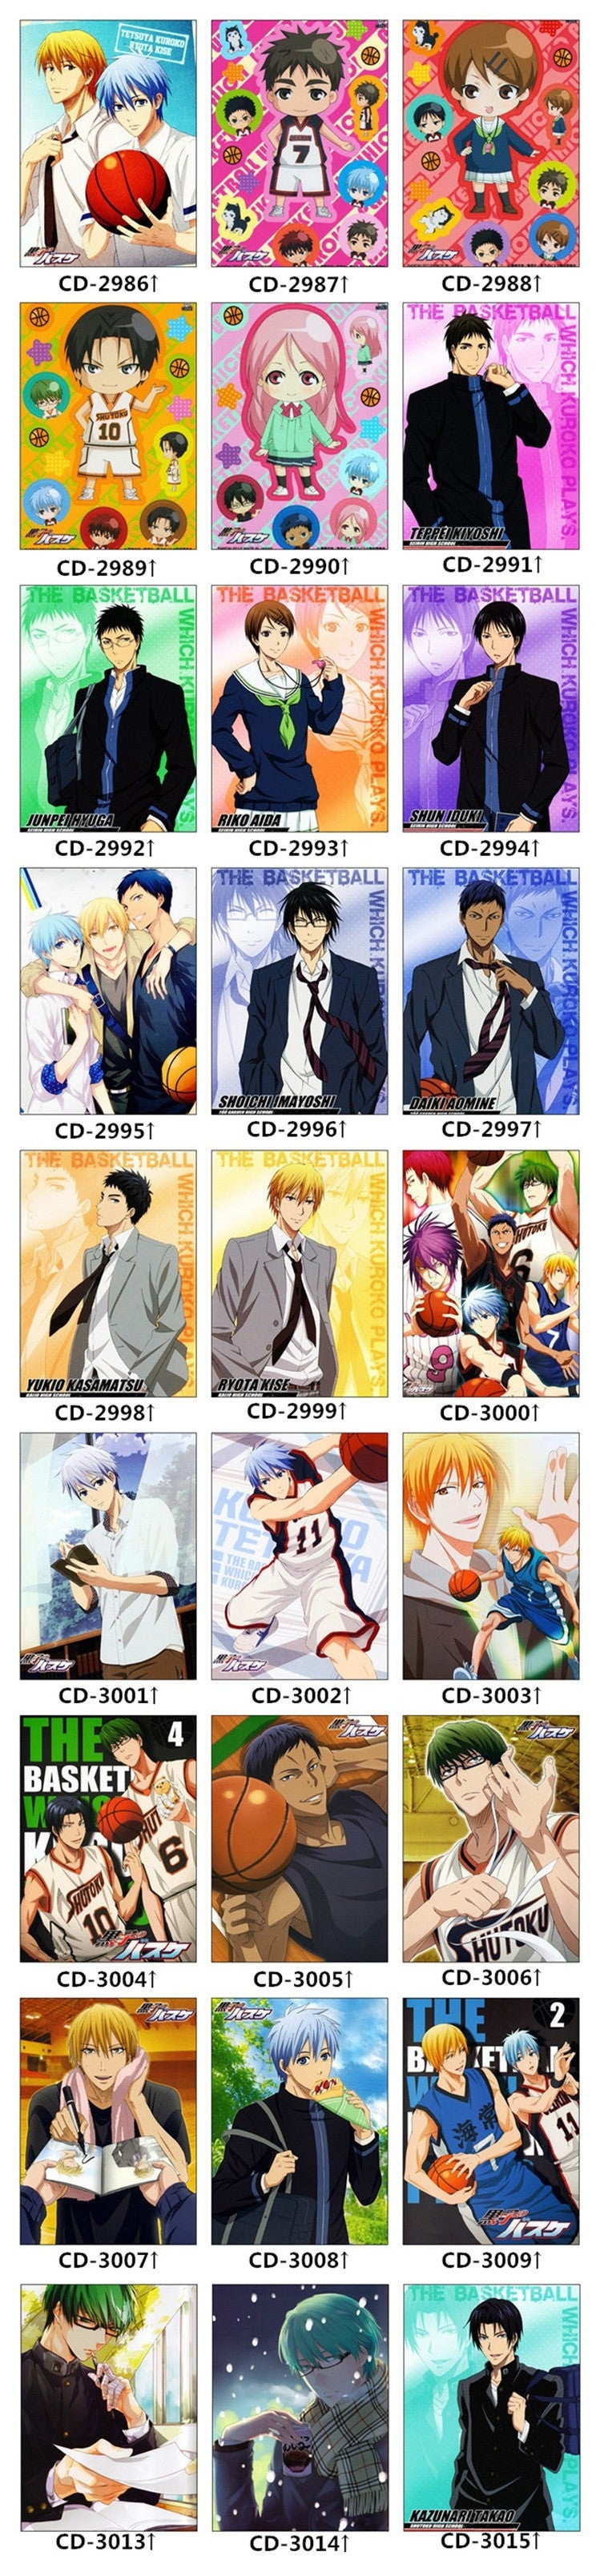 kuroko no basket bedding set designs